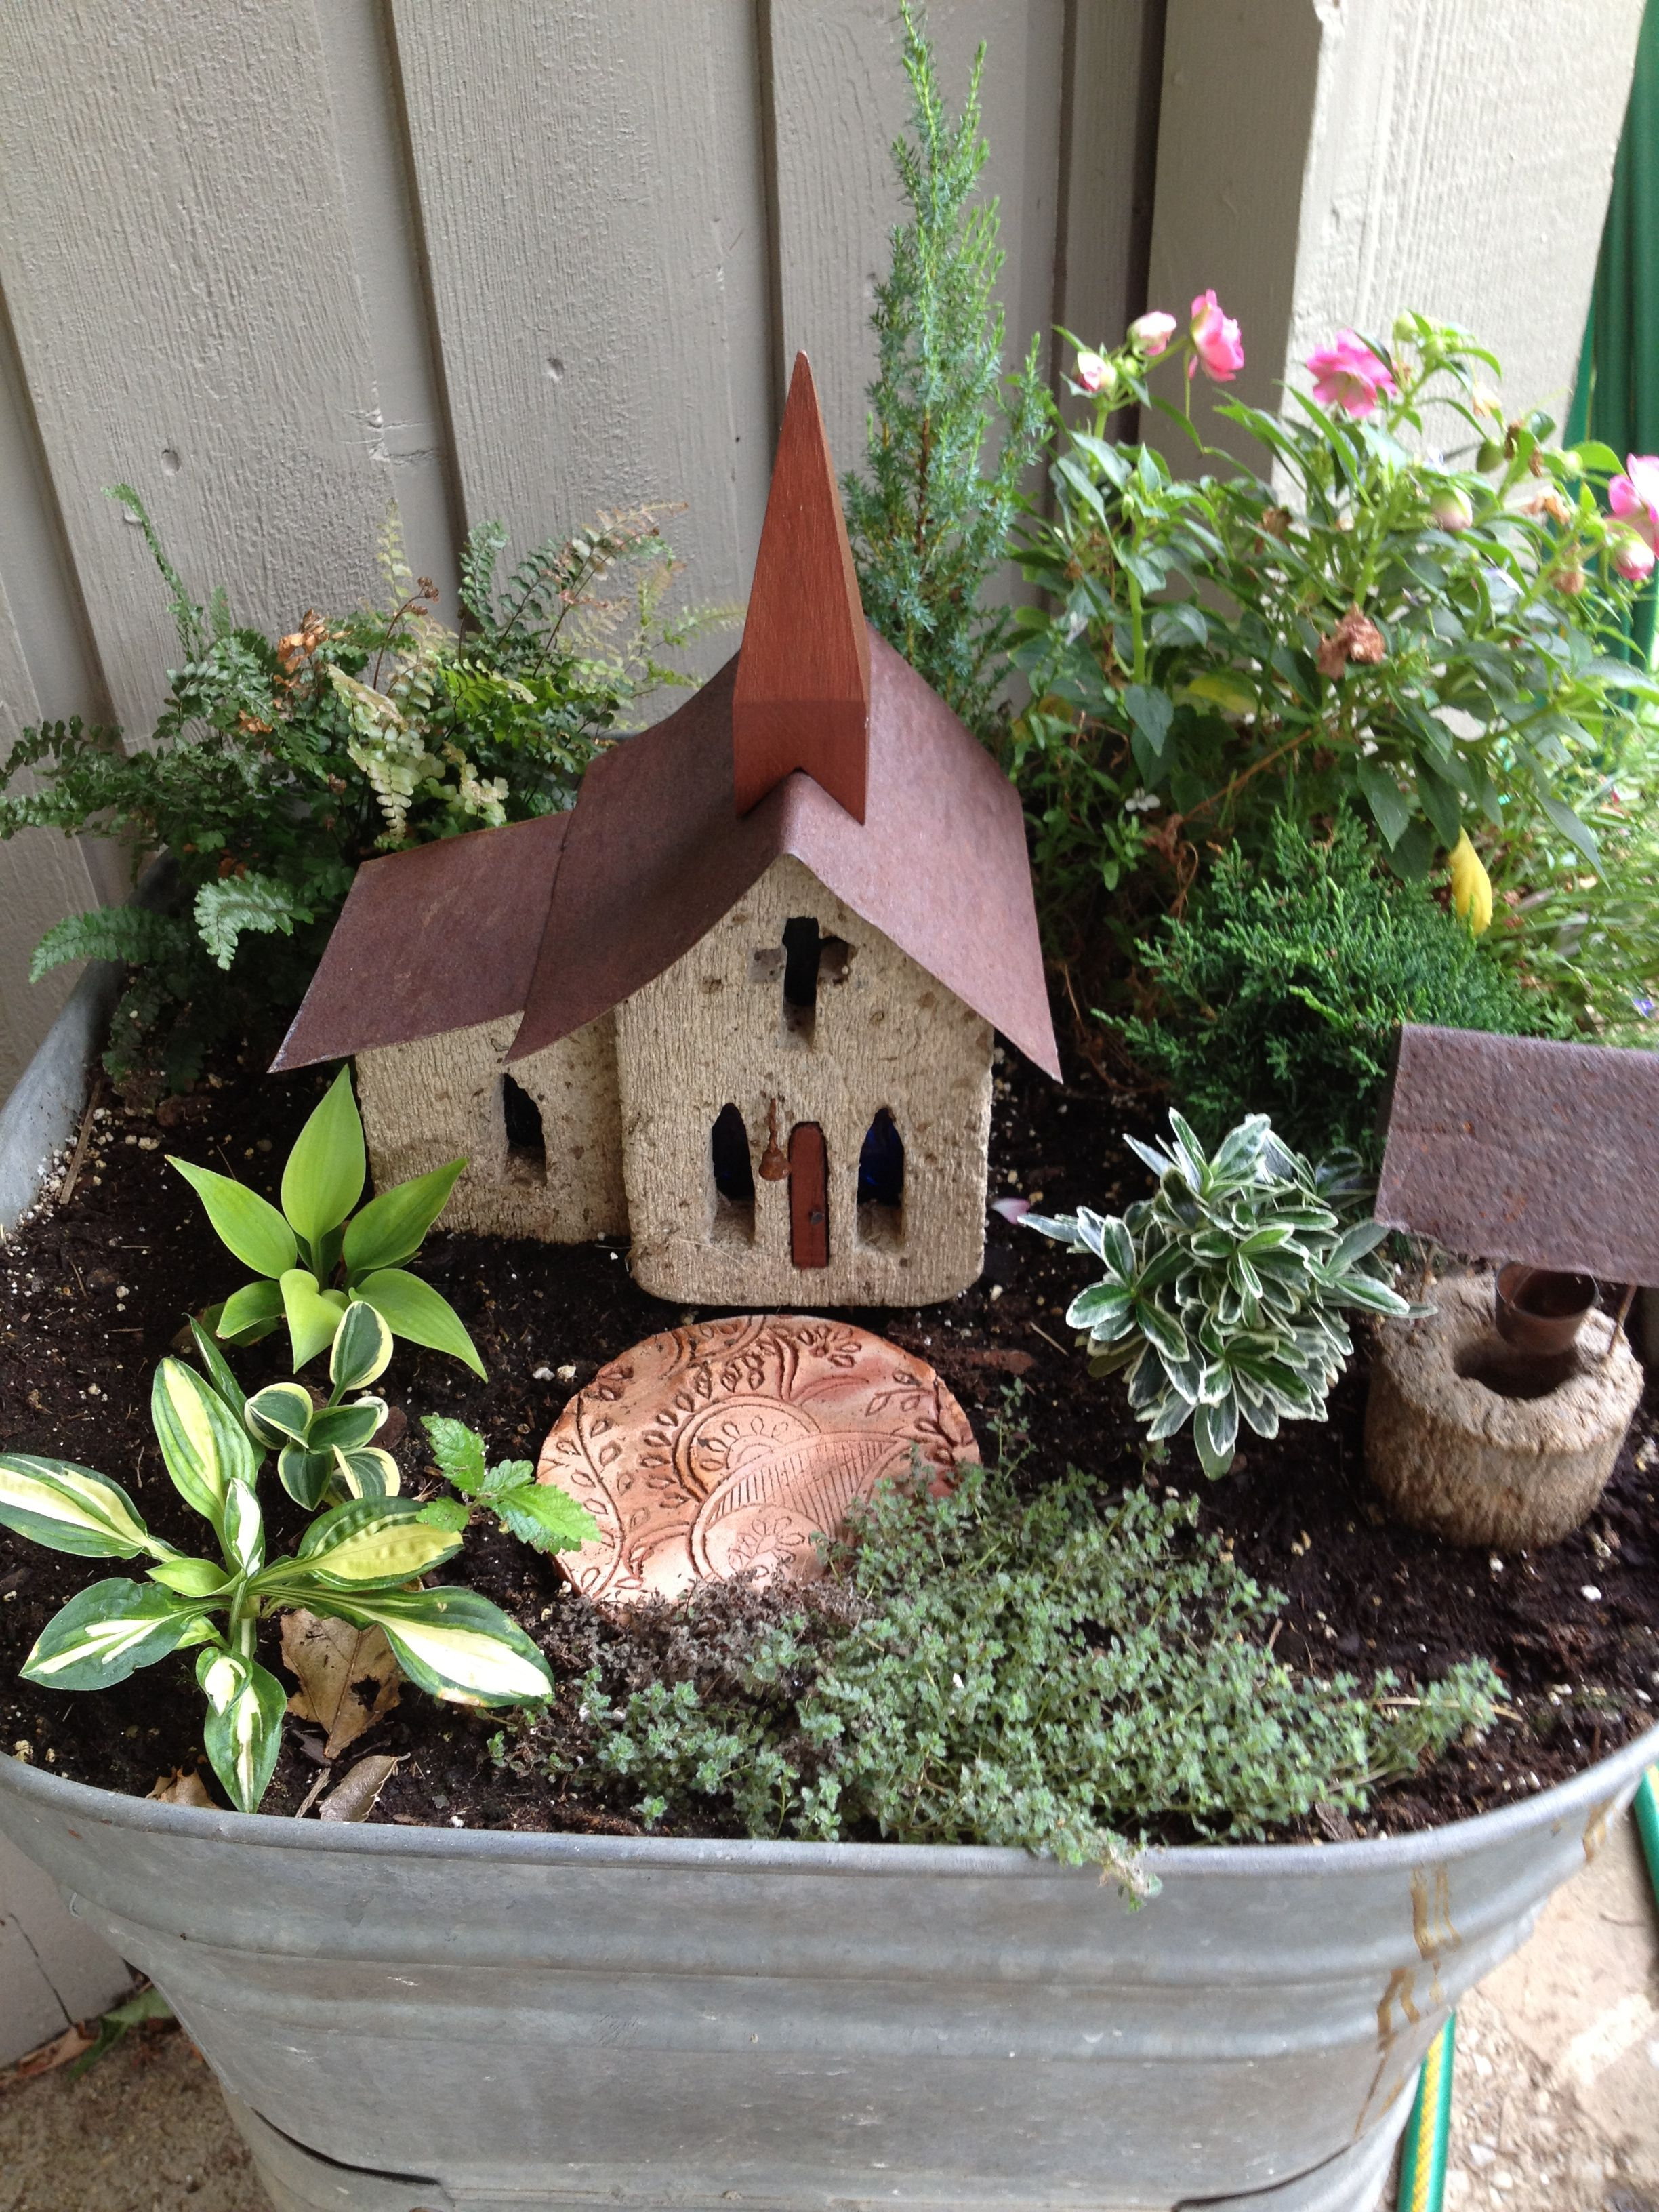 Medium Of Fairy Garden Containers Ideas